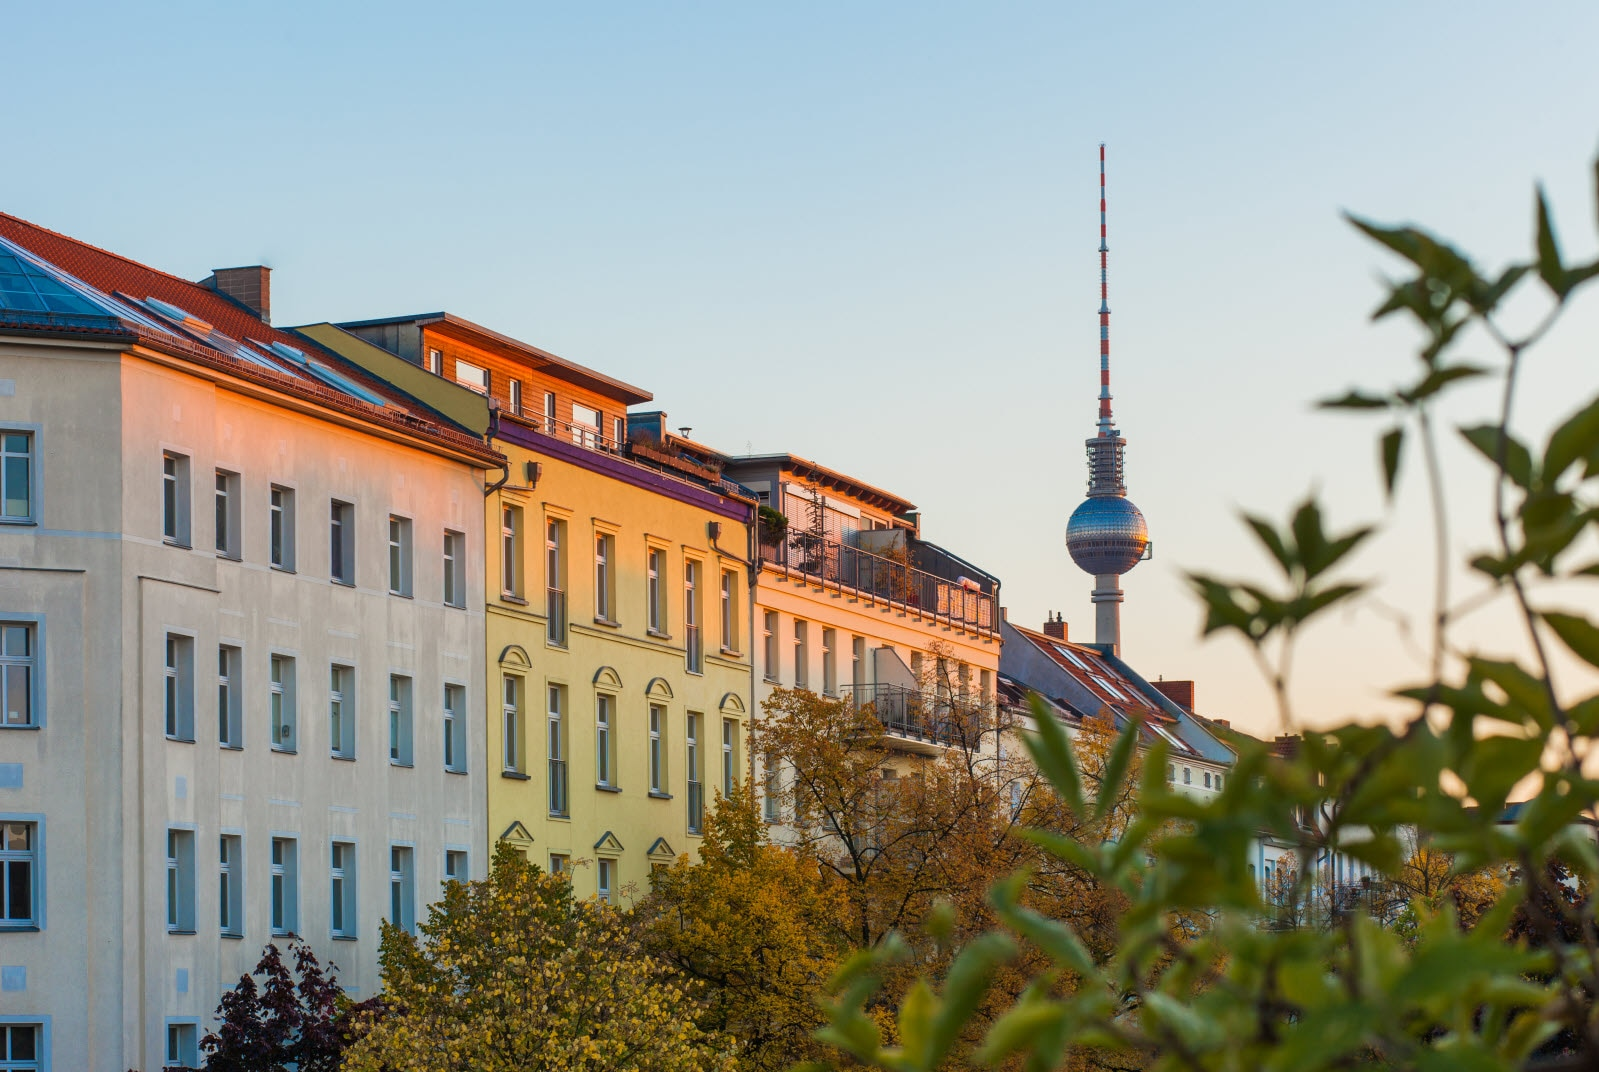 Apartments in Berlin's Prenzlauer Berg neighborhood with Fernsehturm. Mostphotos.com